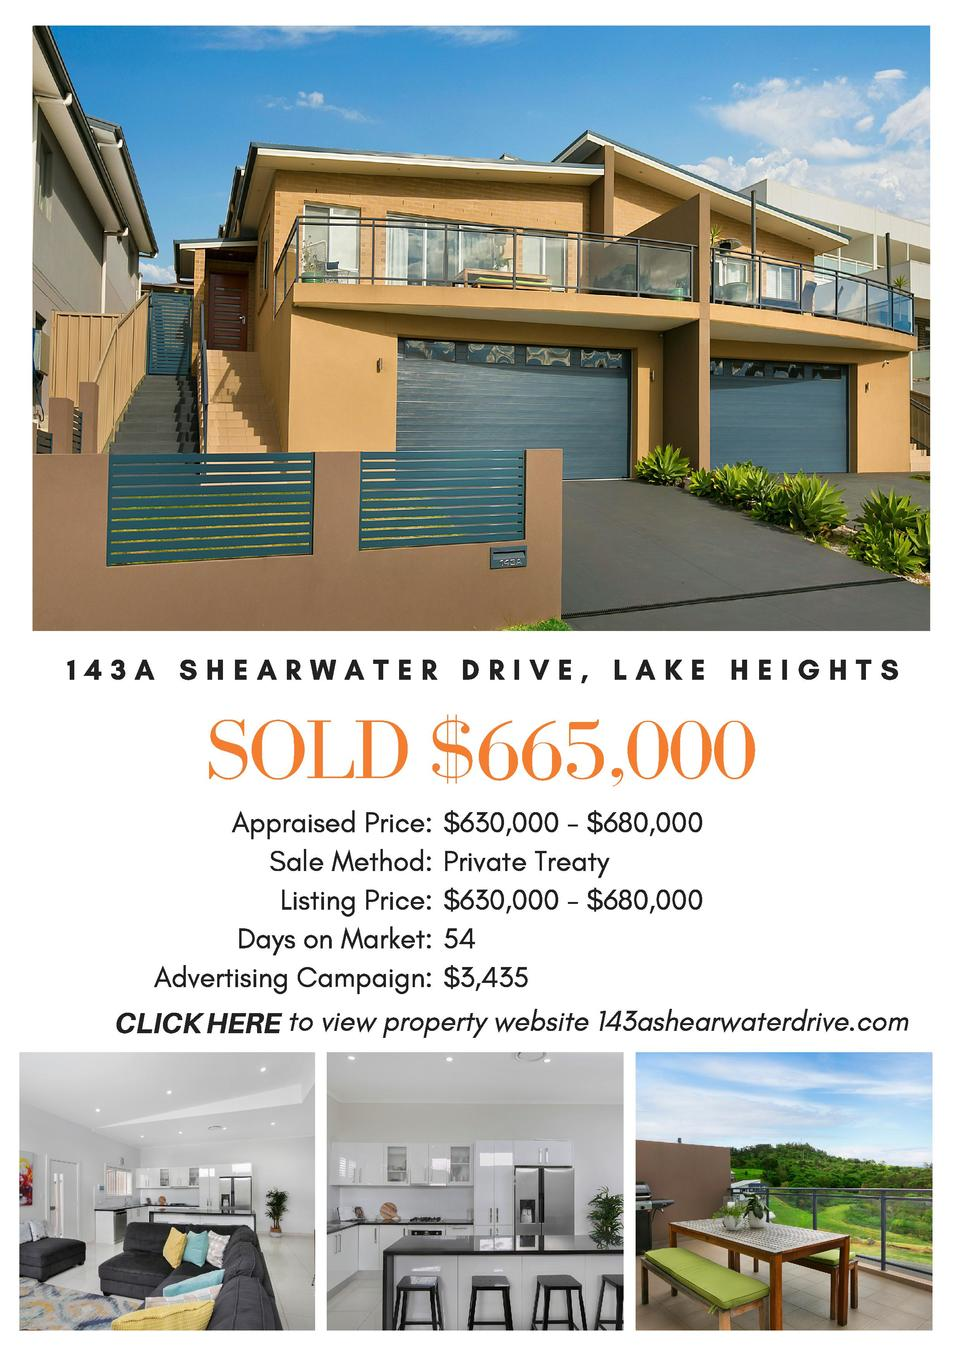 143A SHEARWATER DRIVE, LAKE HEIGHTS  SOLD  665,000 Appraised Price   630,000 -  680,000 Sale Method  Private Treaty   List...